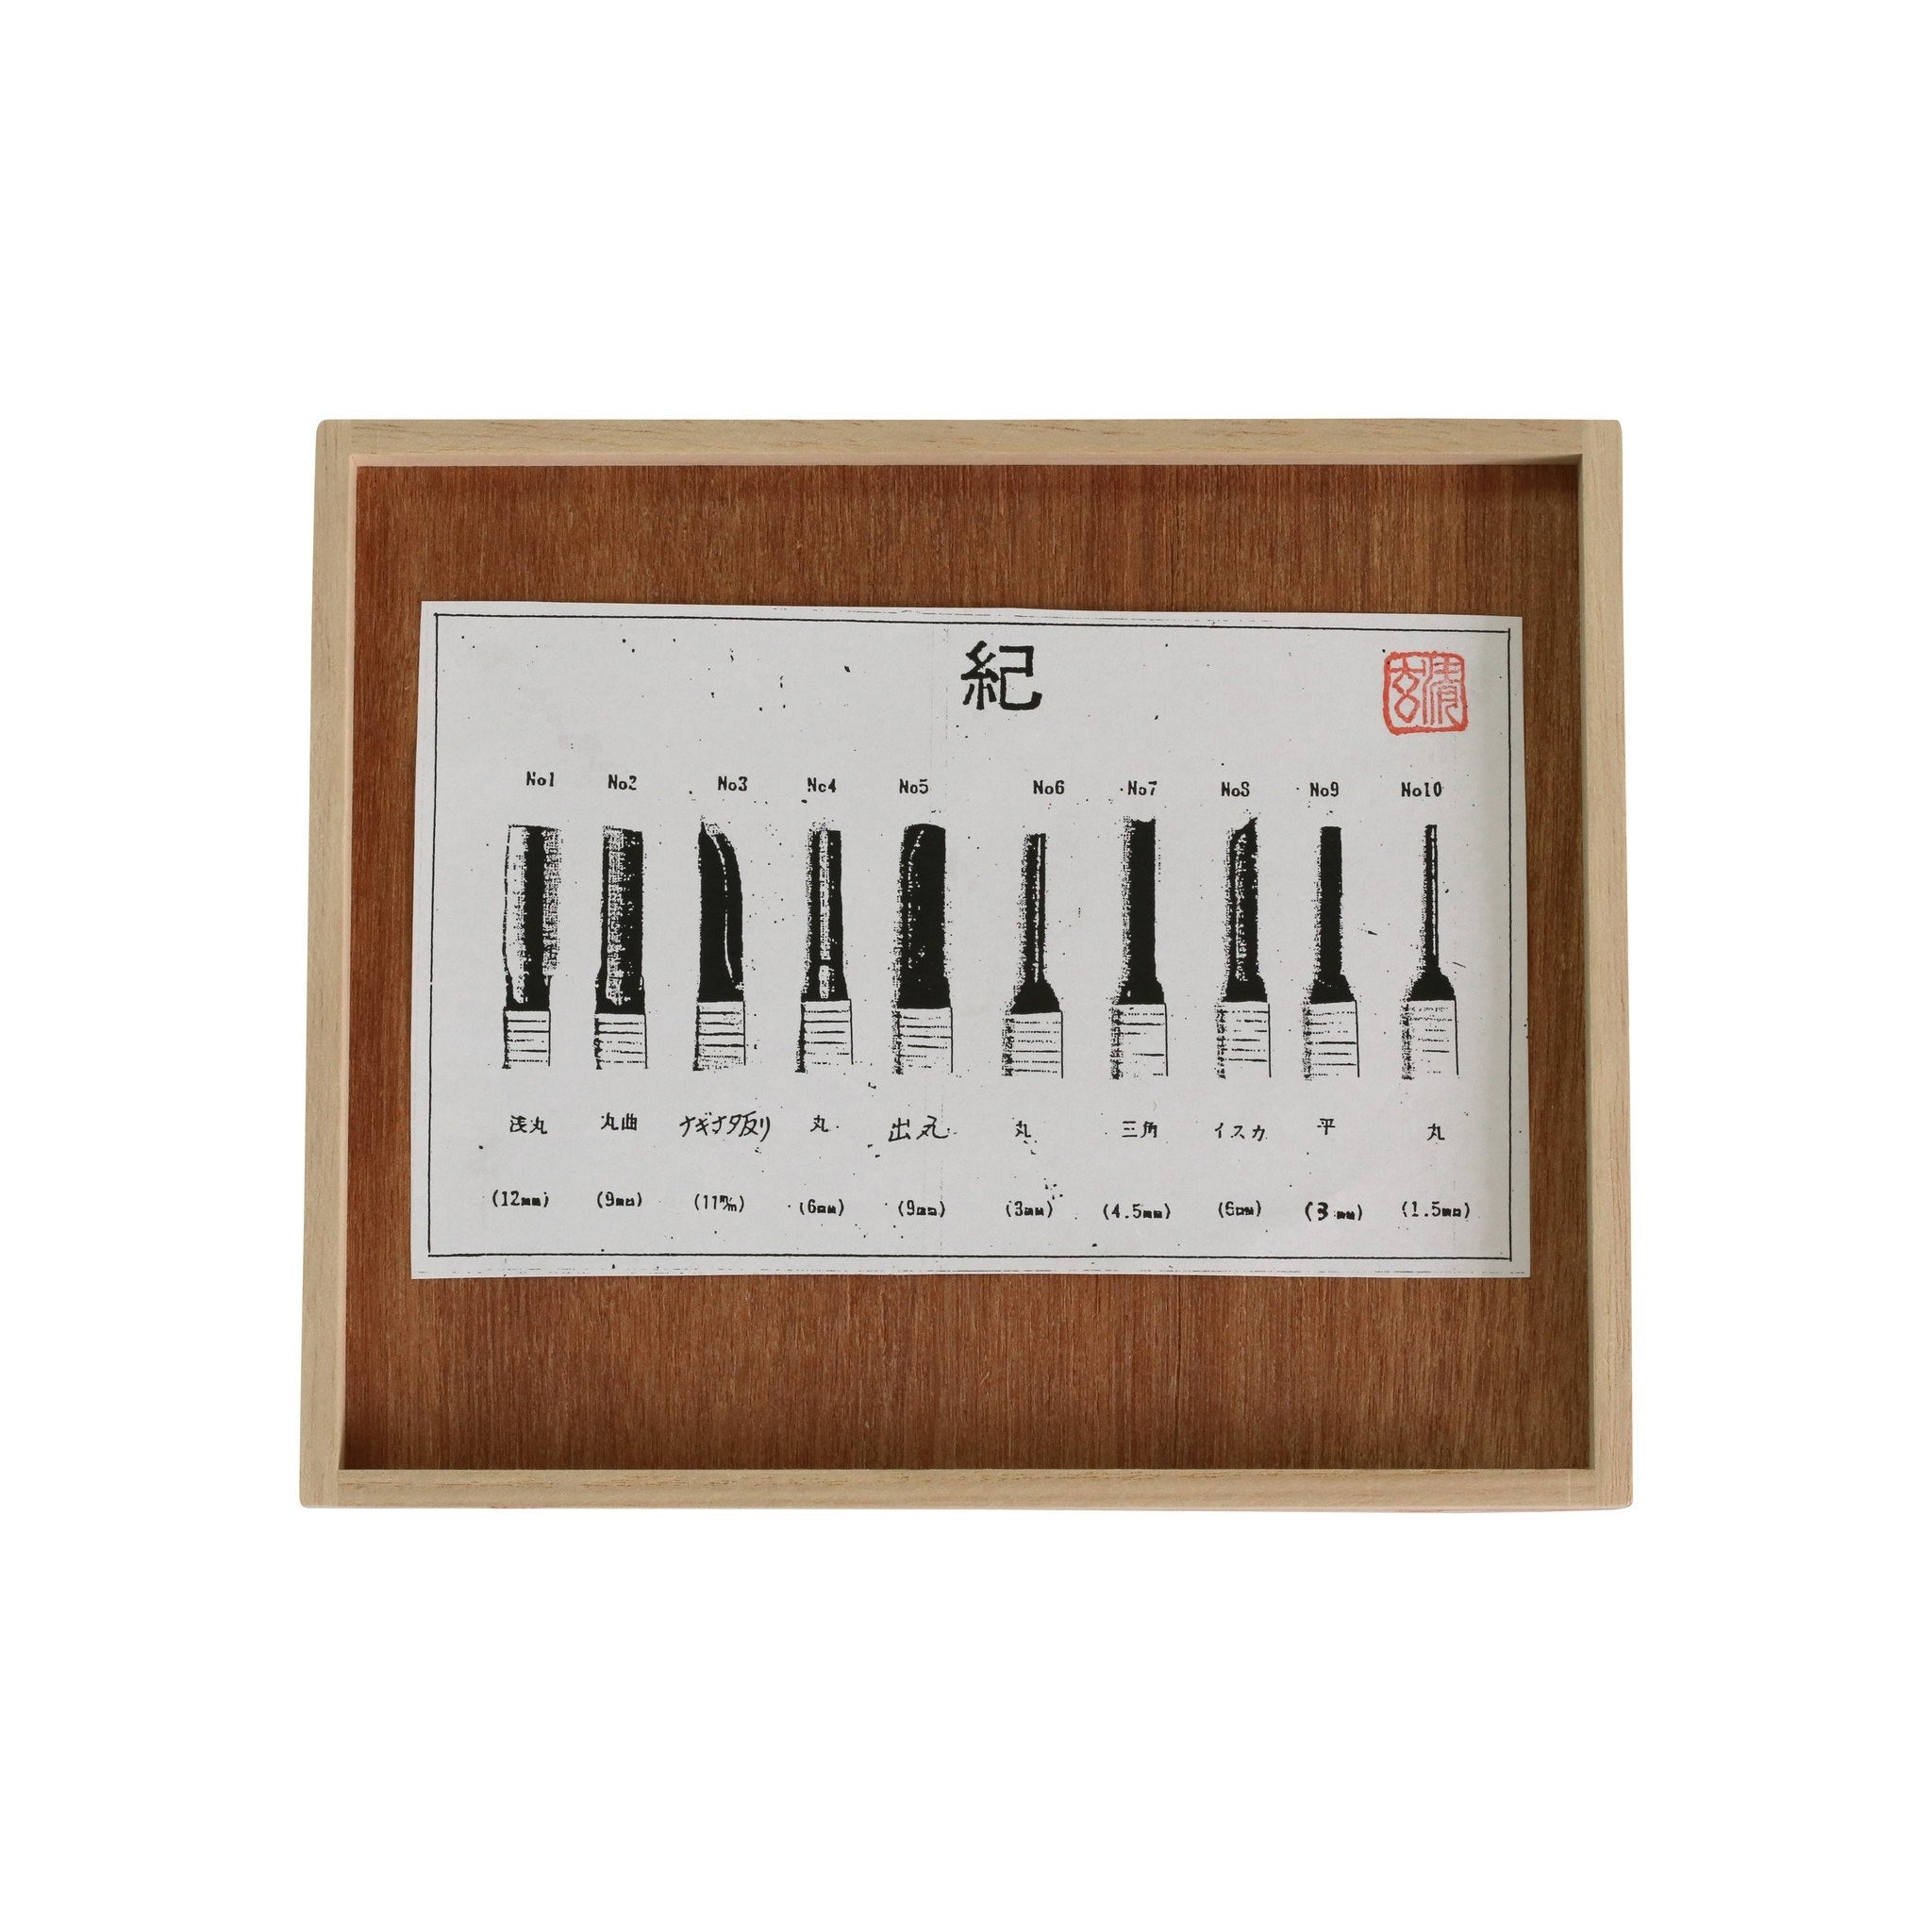 Kawasei Nori Carving Chisel Set, 10 pcs - Japanese Tools Australia